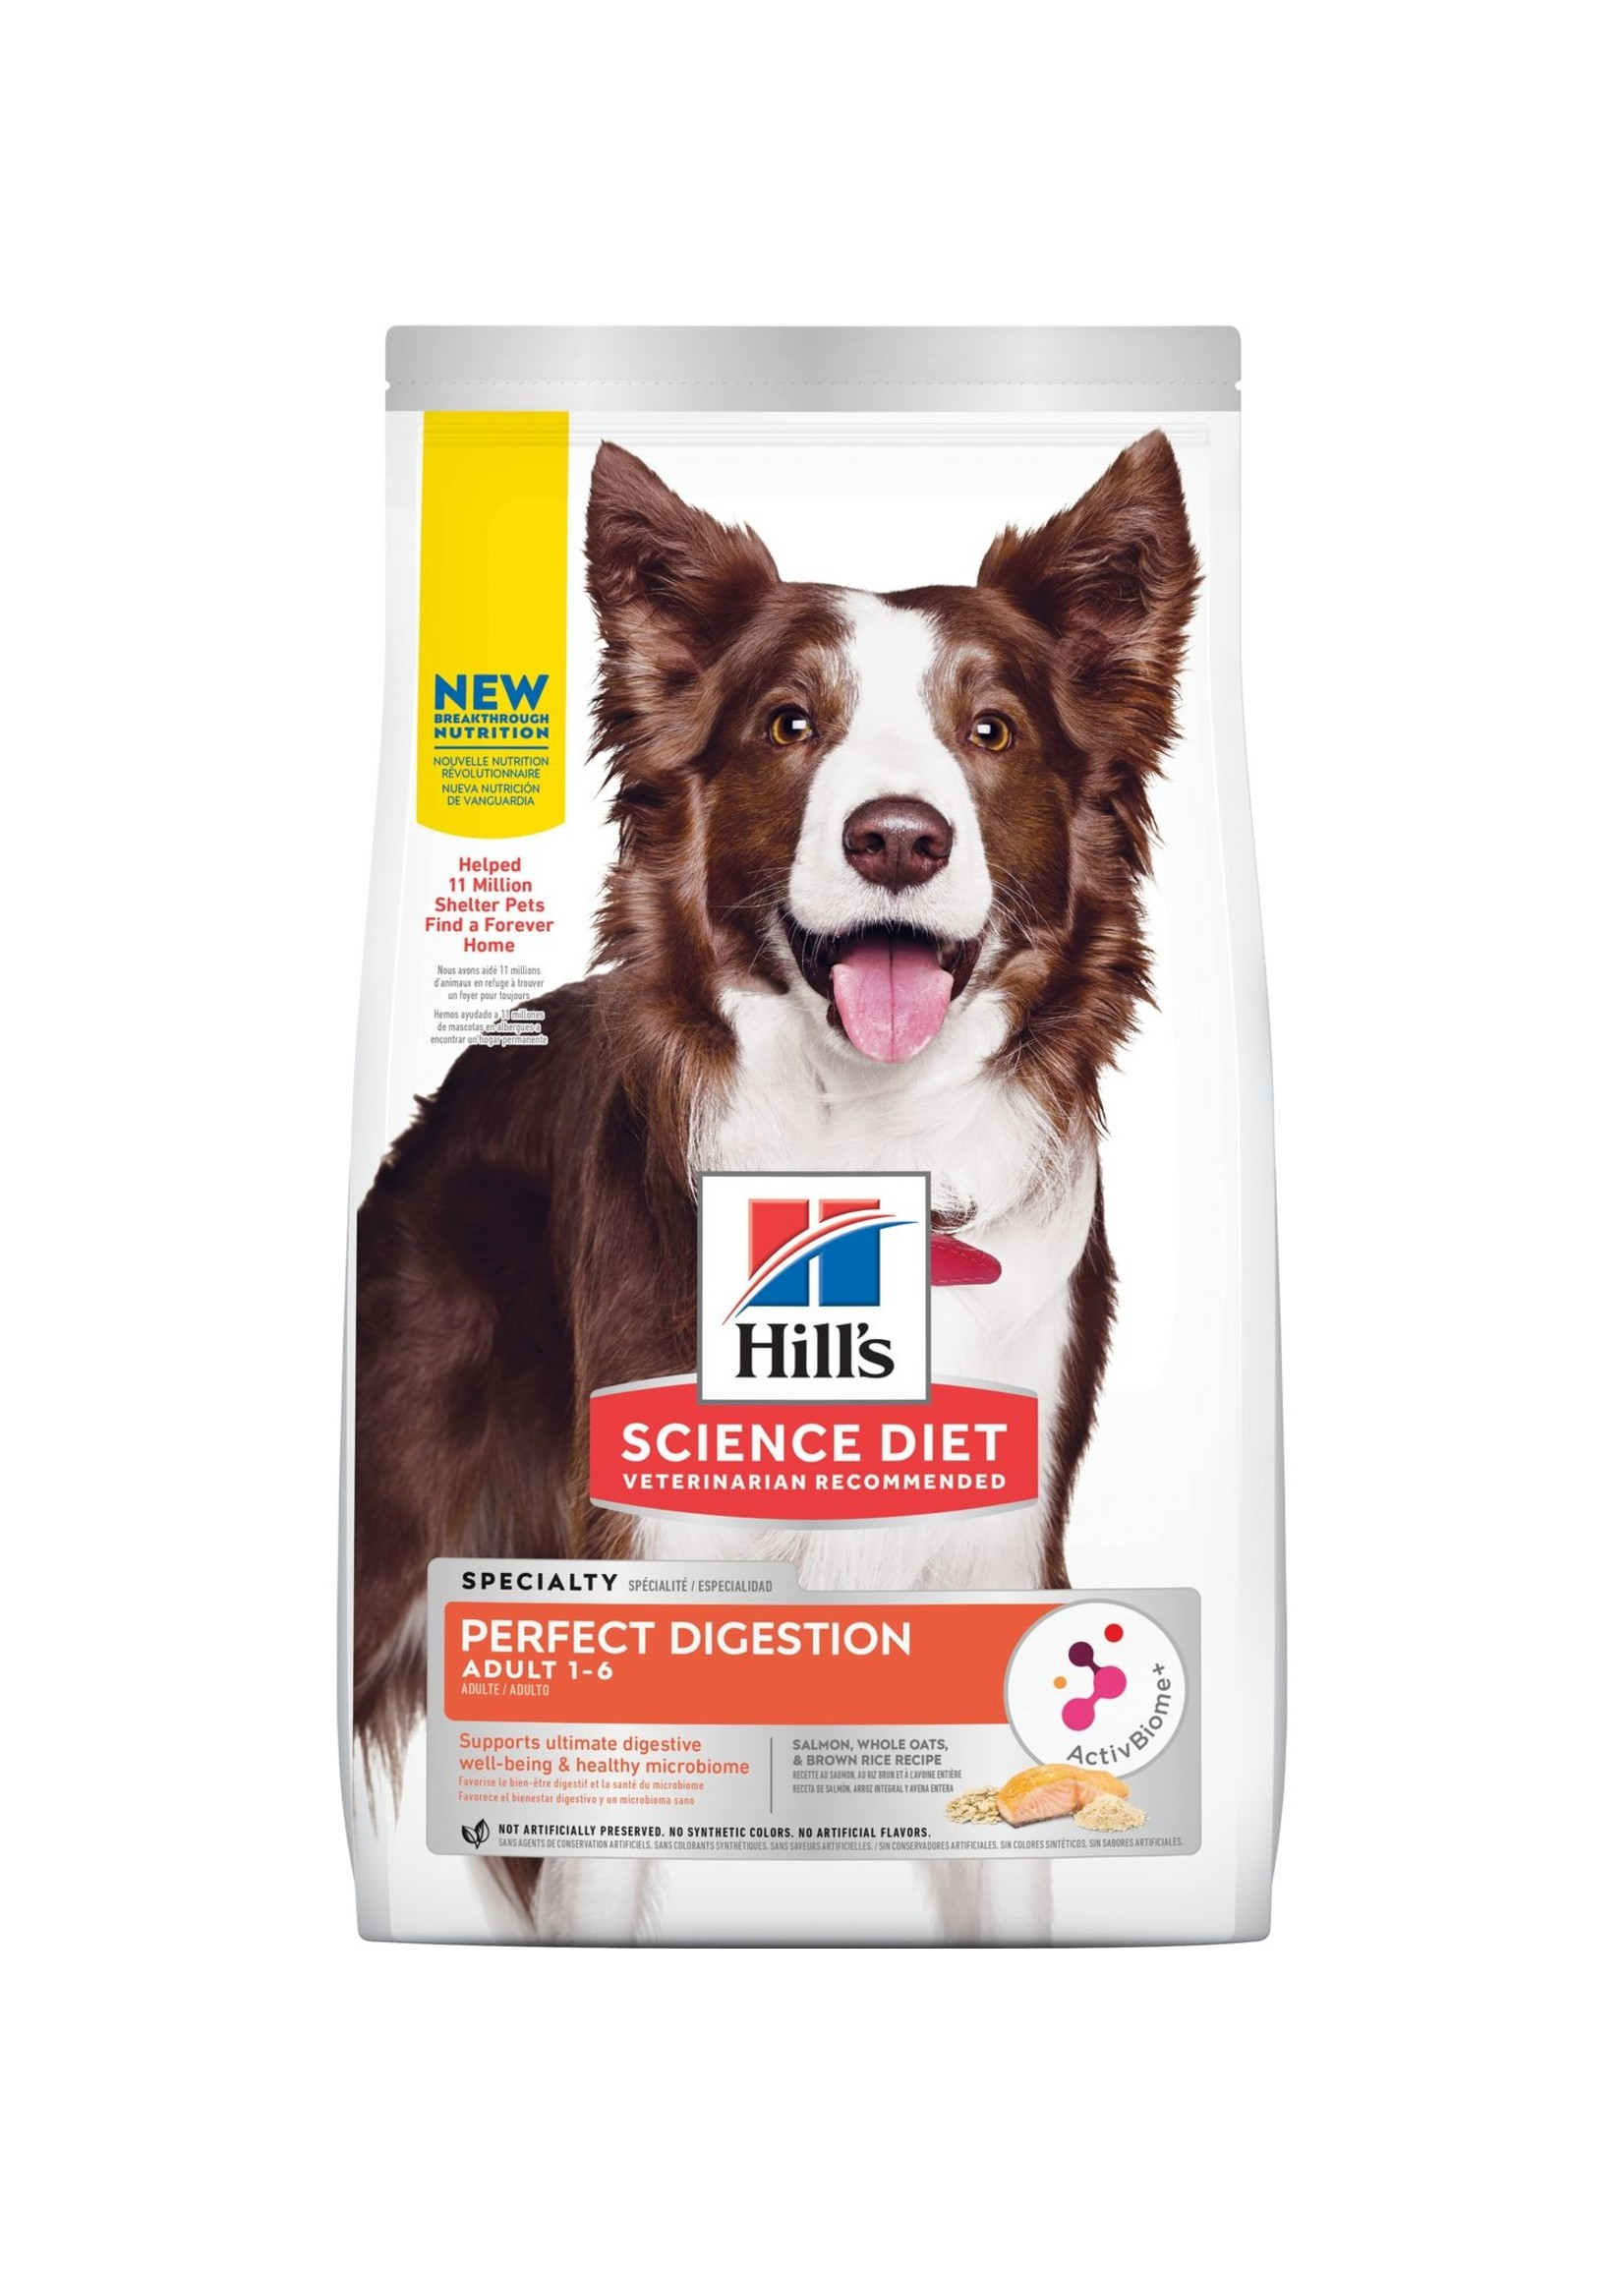 Hill's Science Diet Hill's Science Diet Perfect Digestion